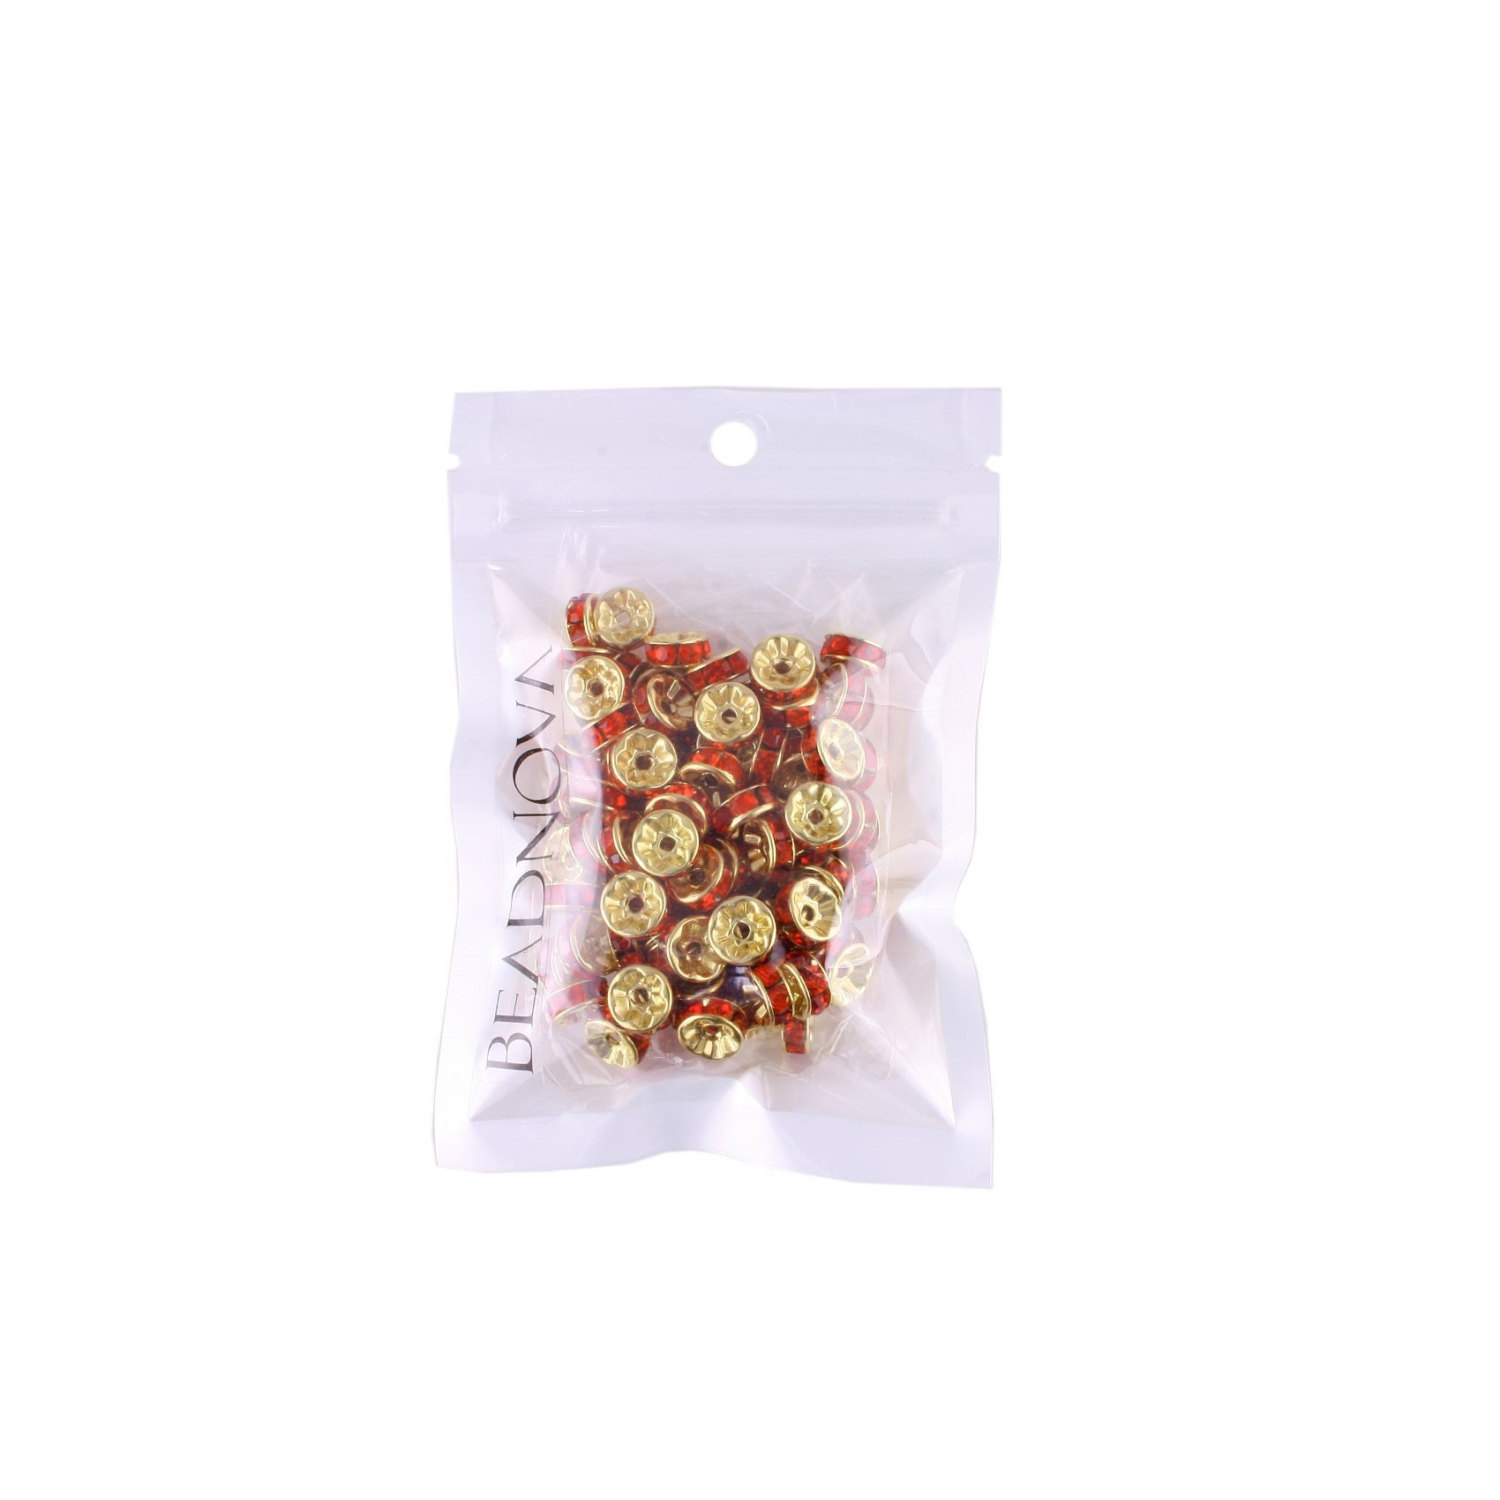 100 Pcs Gold Plated Crystal Rondelle Spacer Beads 10mm. Style - Hyacinth